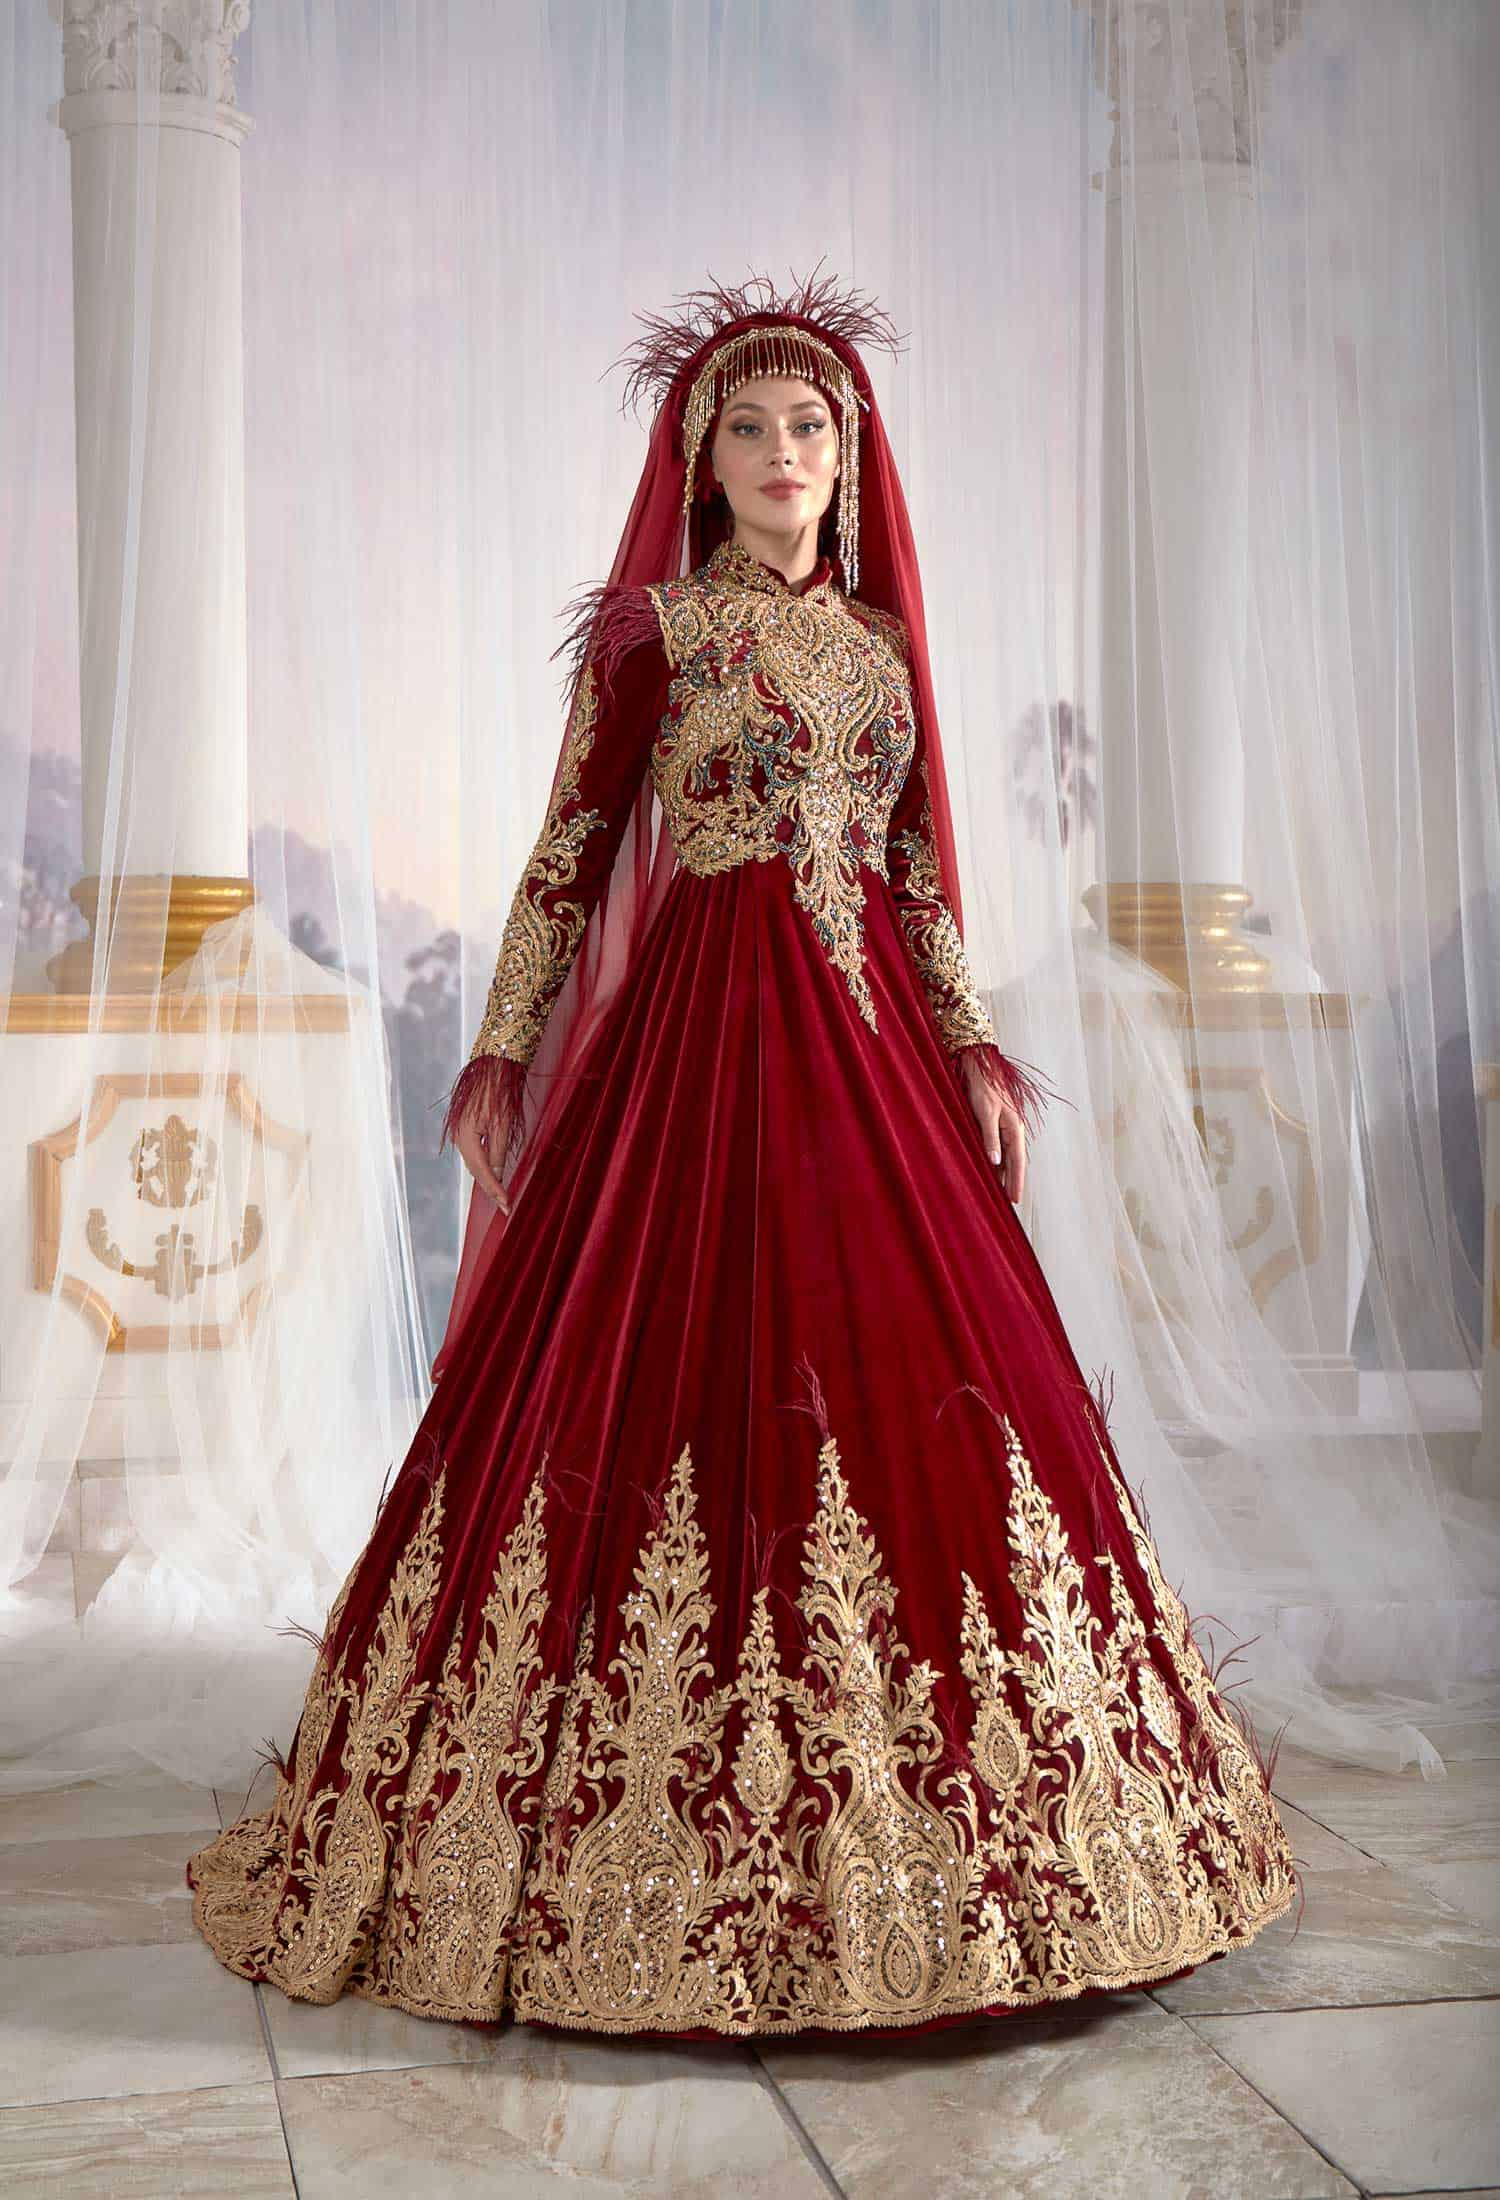 f0a9badf1a3ec Red Ottoman Turkish Caftan Golden Embroidery İslamic Party Wear Jijab  Clothing Long Evening Dress